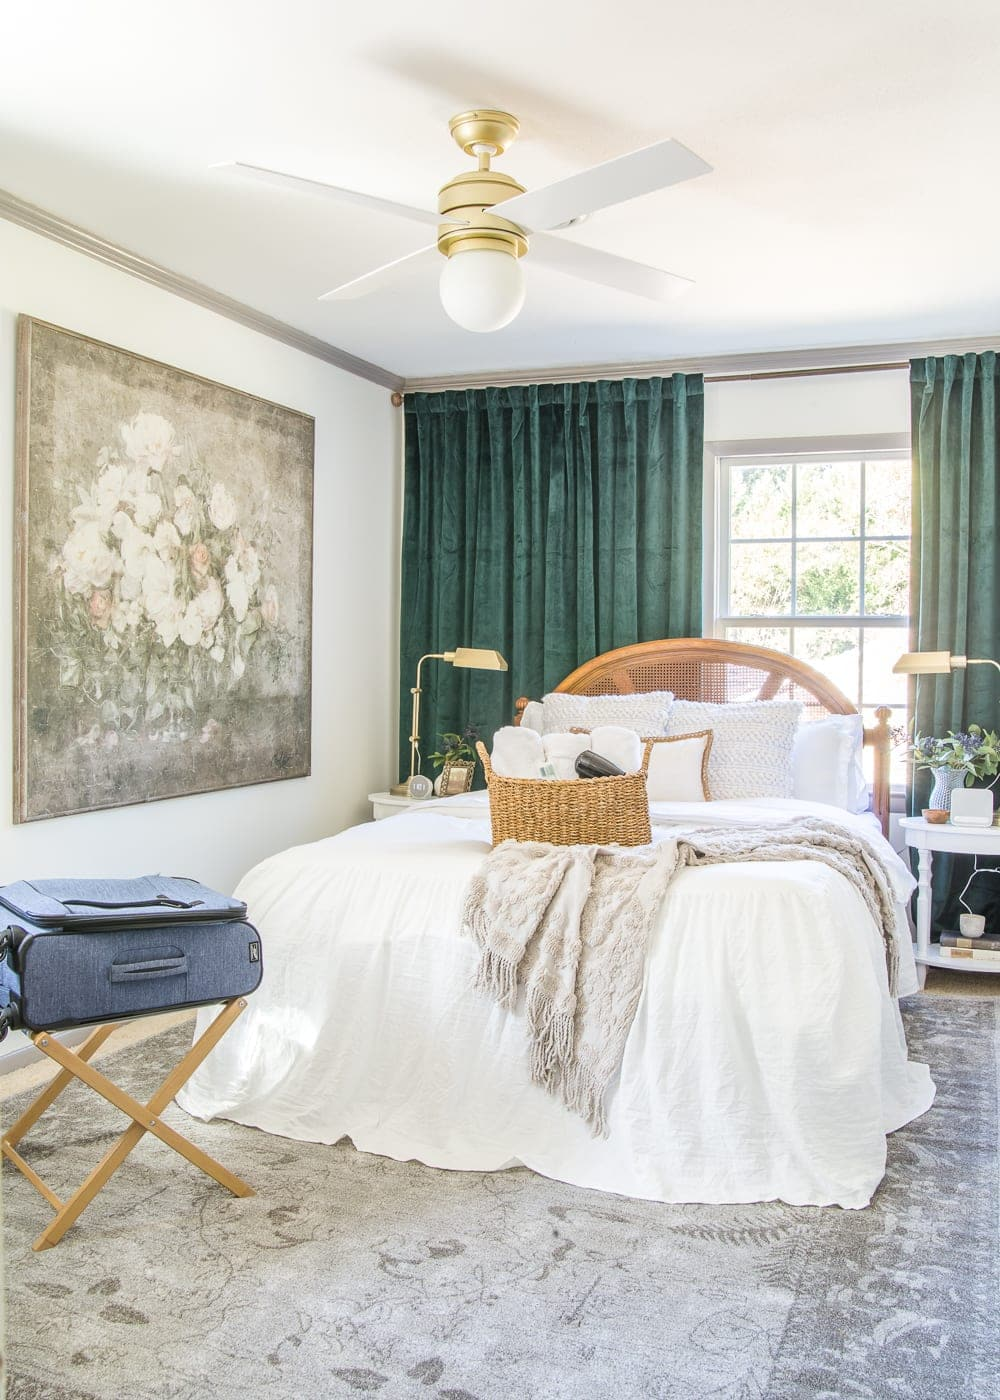 A master list of all of the best amenities and essentials to set up your guest bedroom like a hotel suite to help guests feel pampered and relaxed. #guestbedroom #guestroom #guestbedroomessentials #hospitality #guestroomessentials #guestroomamenities #perfectguestroom